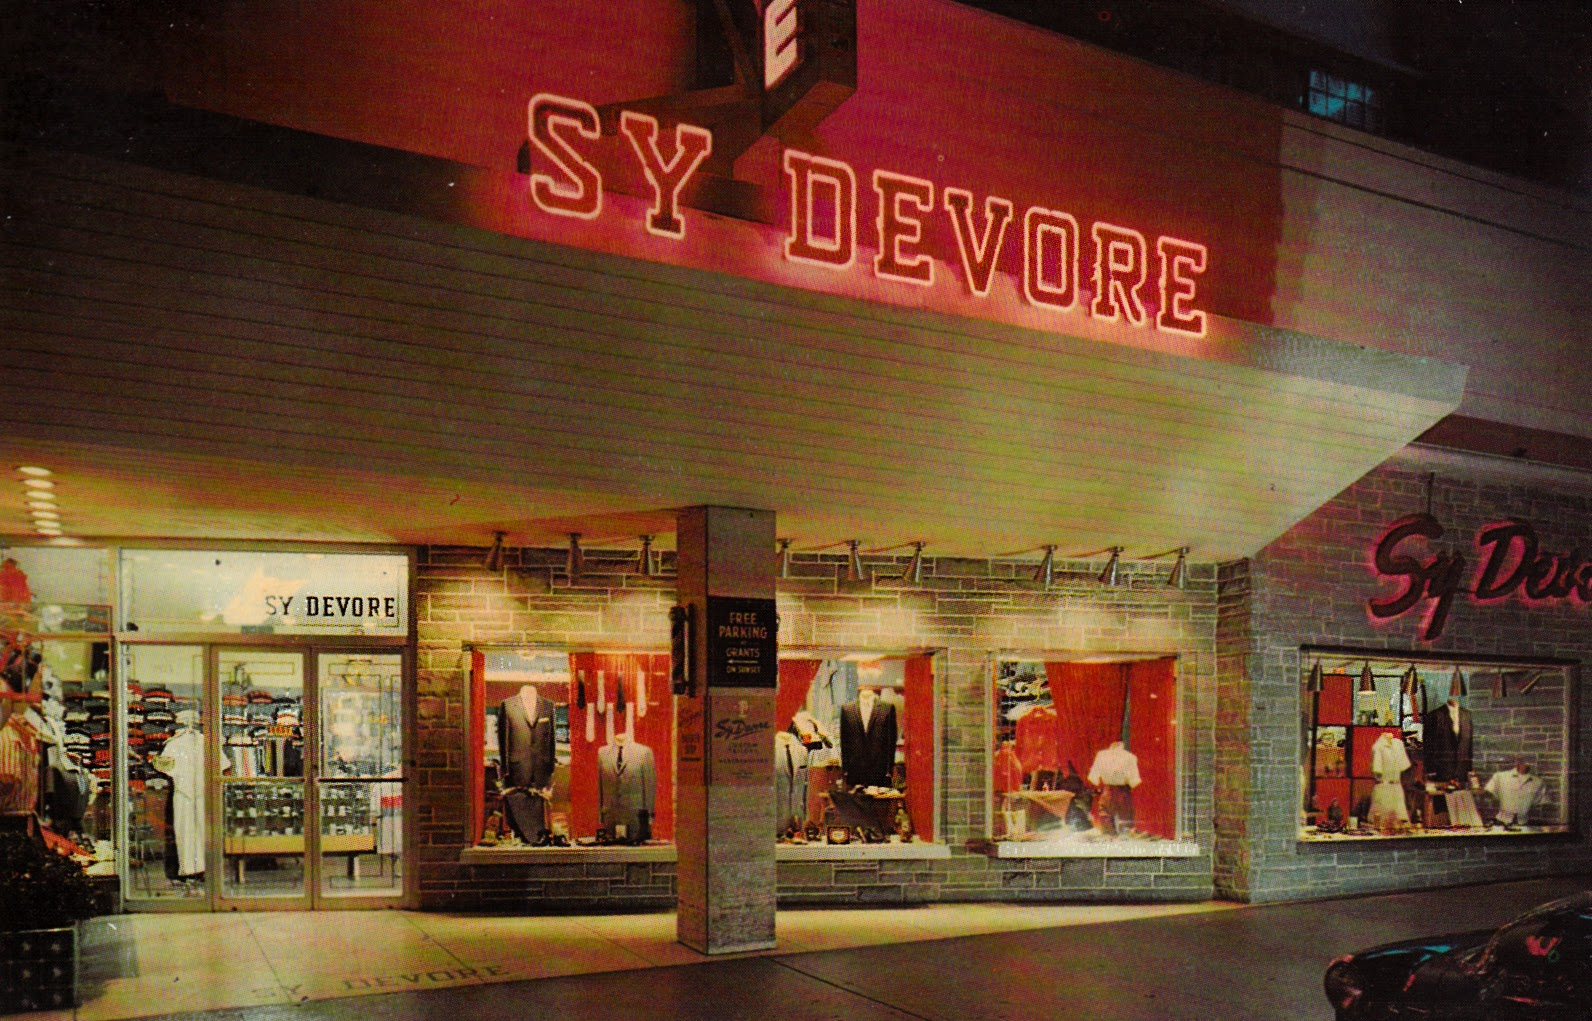 89875cd9 In 1944, a tailor named Sy Devore moved to Los Angeles from New York to  open a 900-square-foot shop at the glamorous intersection of Sunset  Boulevard and ...